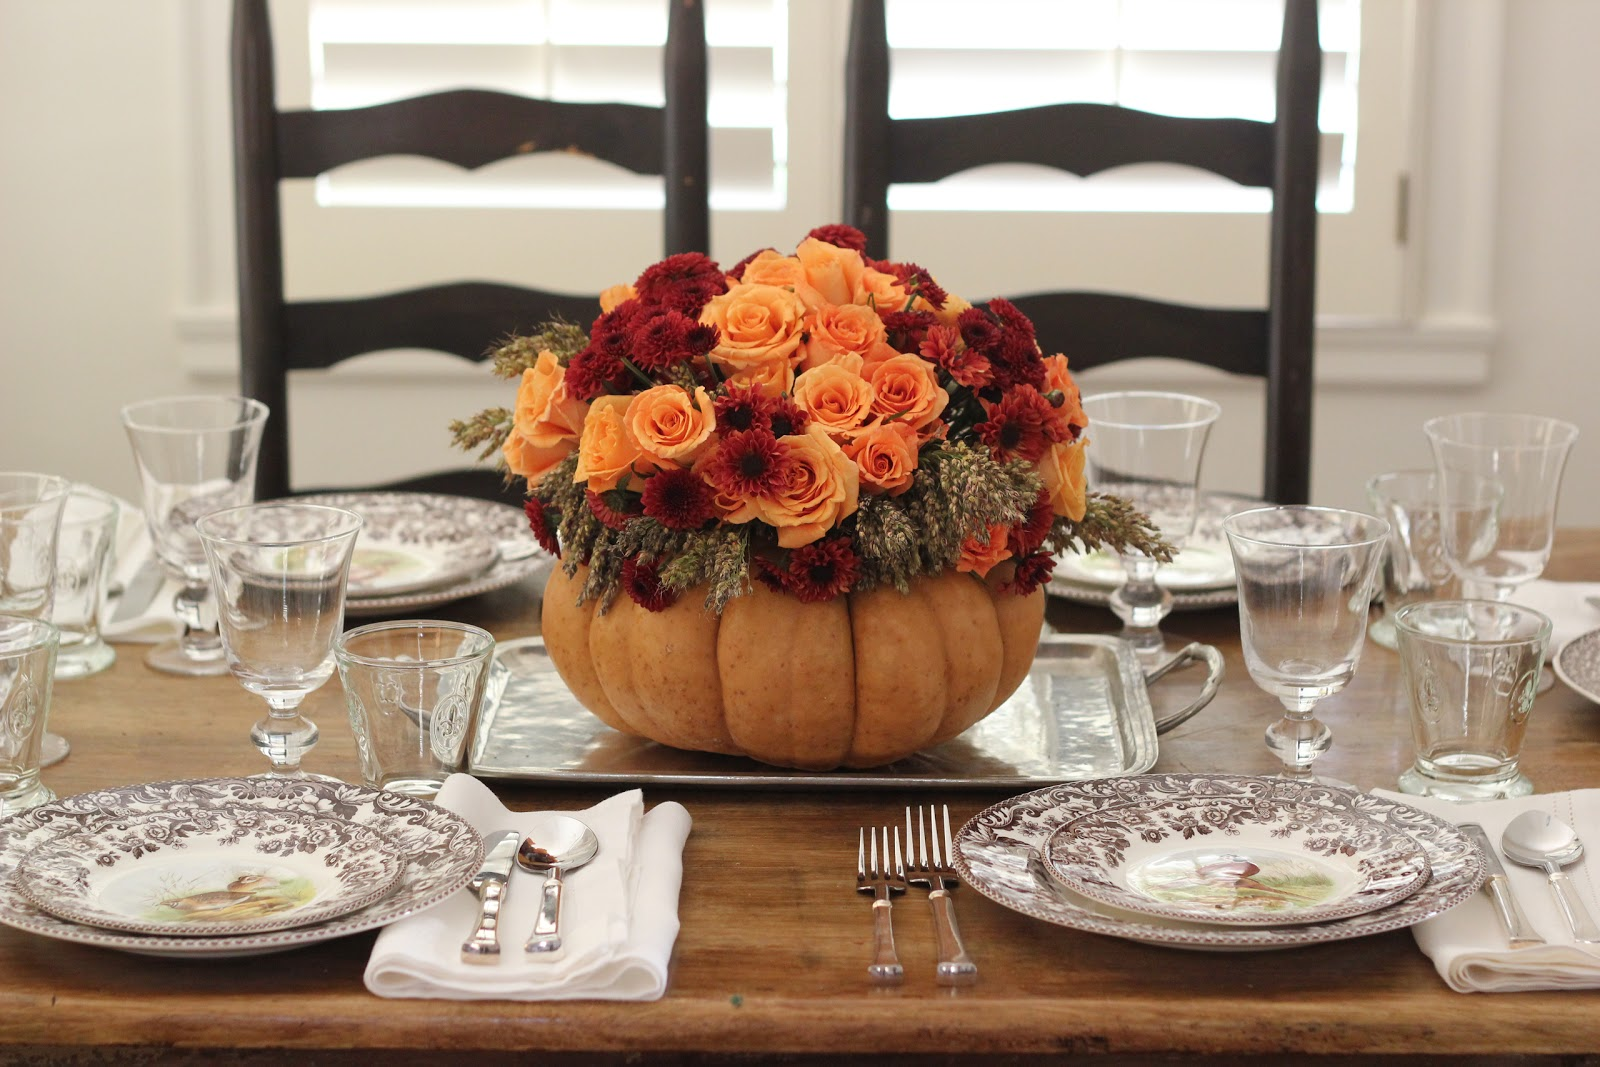 Jenny steffens hobick thanksgiving table setting diy Thanksgiving table